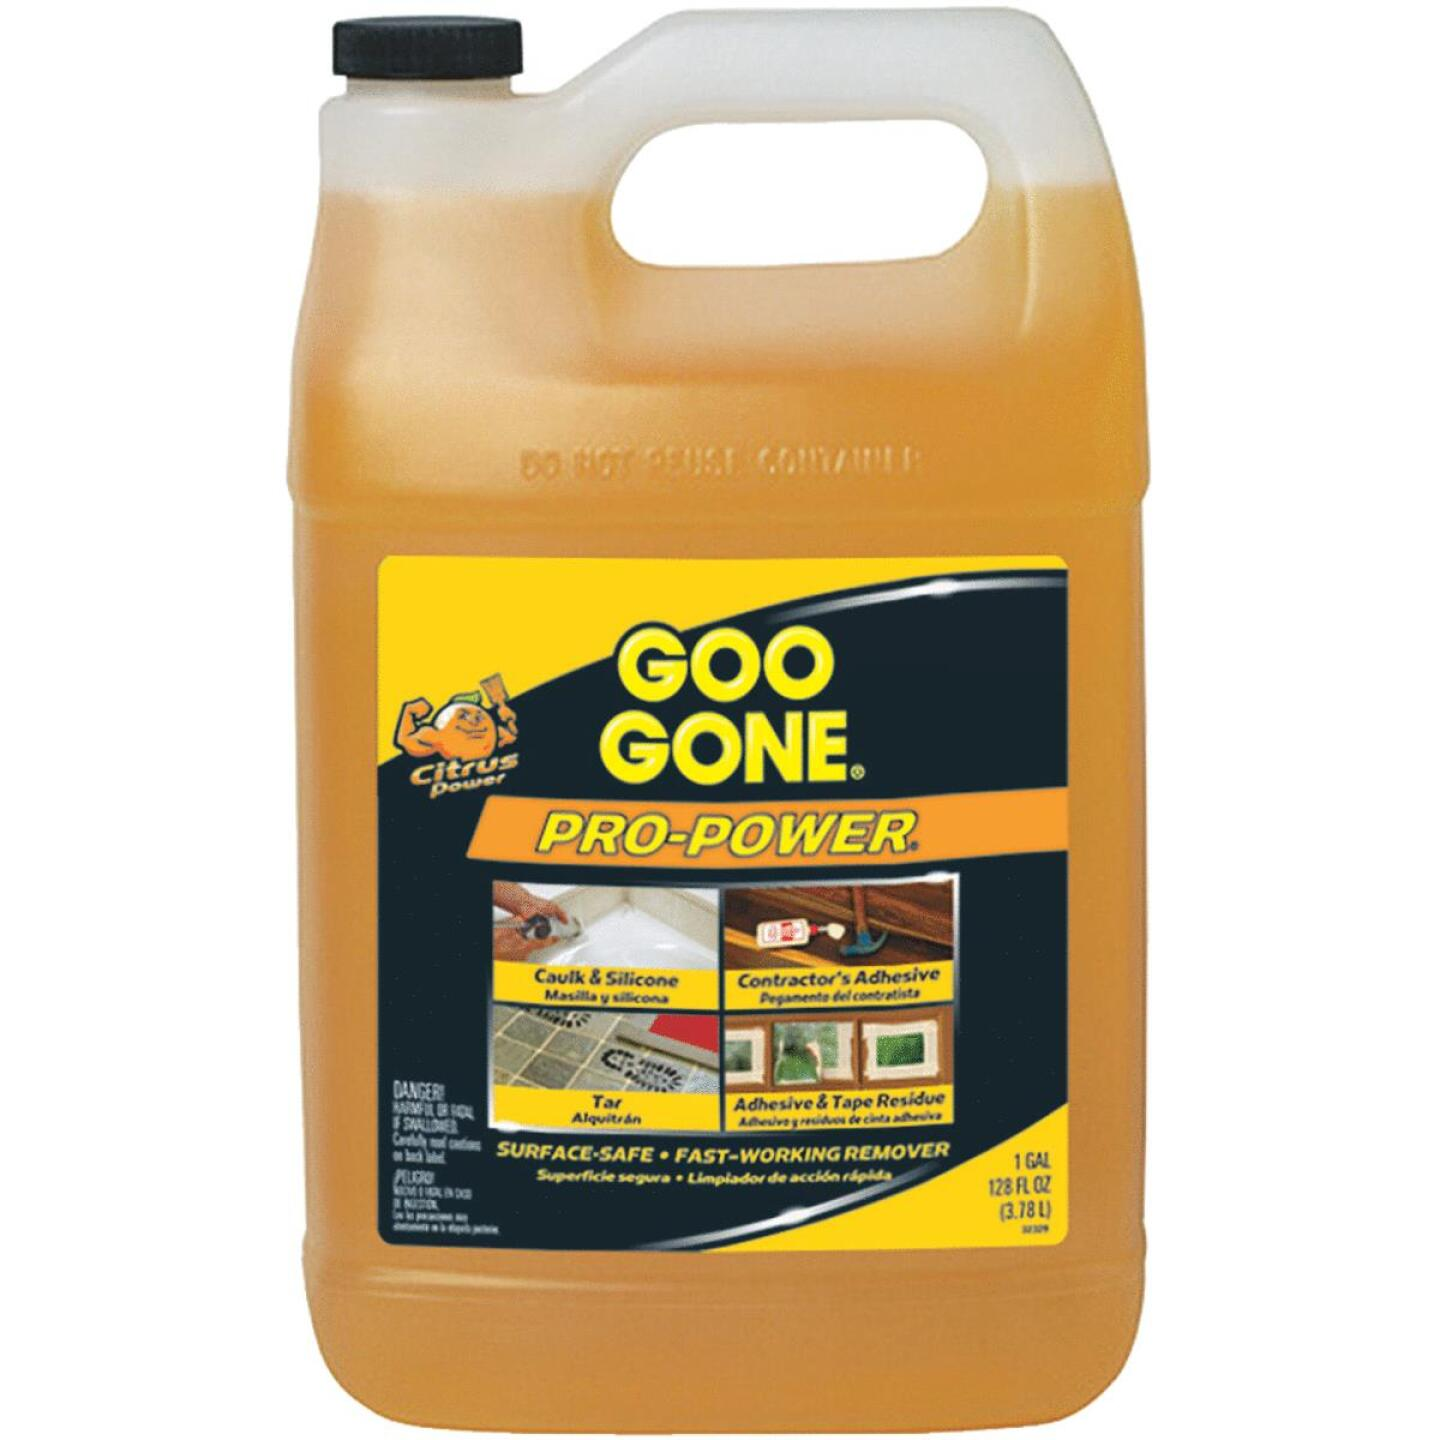 Goo Gone 1 Gal. Pro-Power Adhesive Remover Image 221